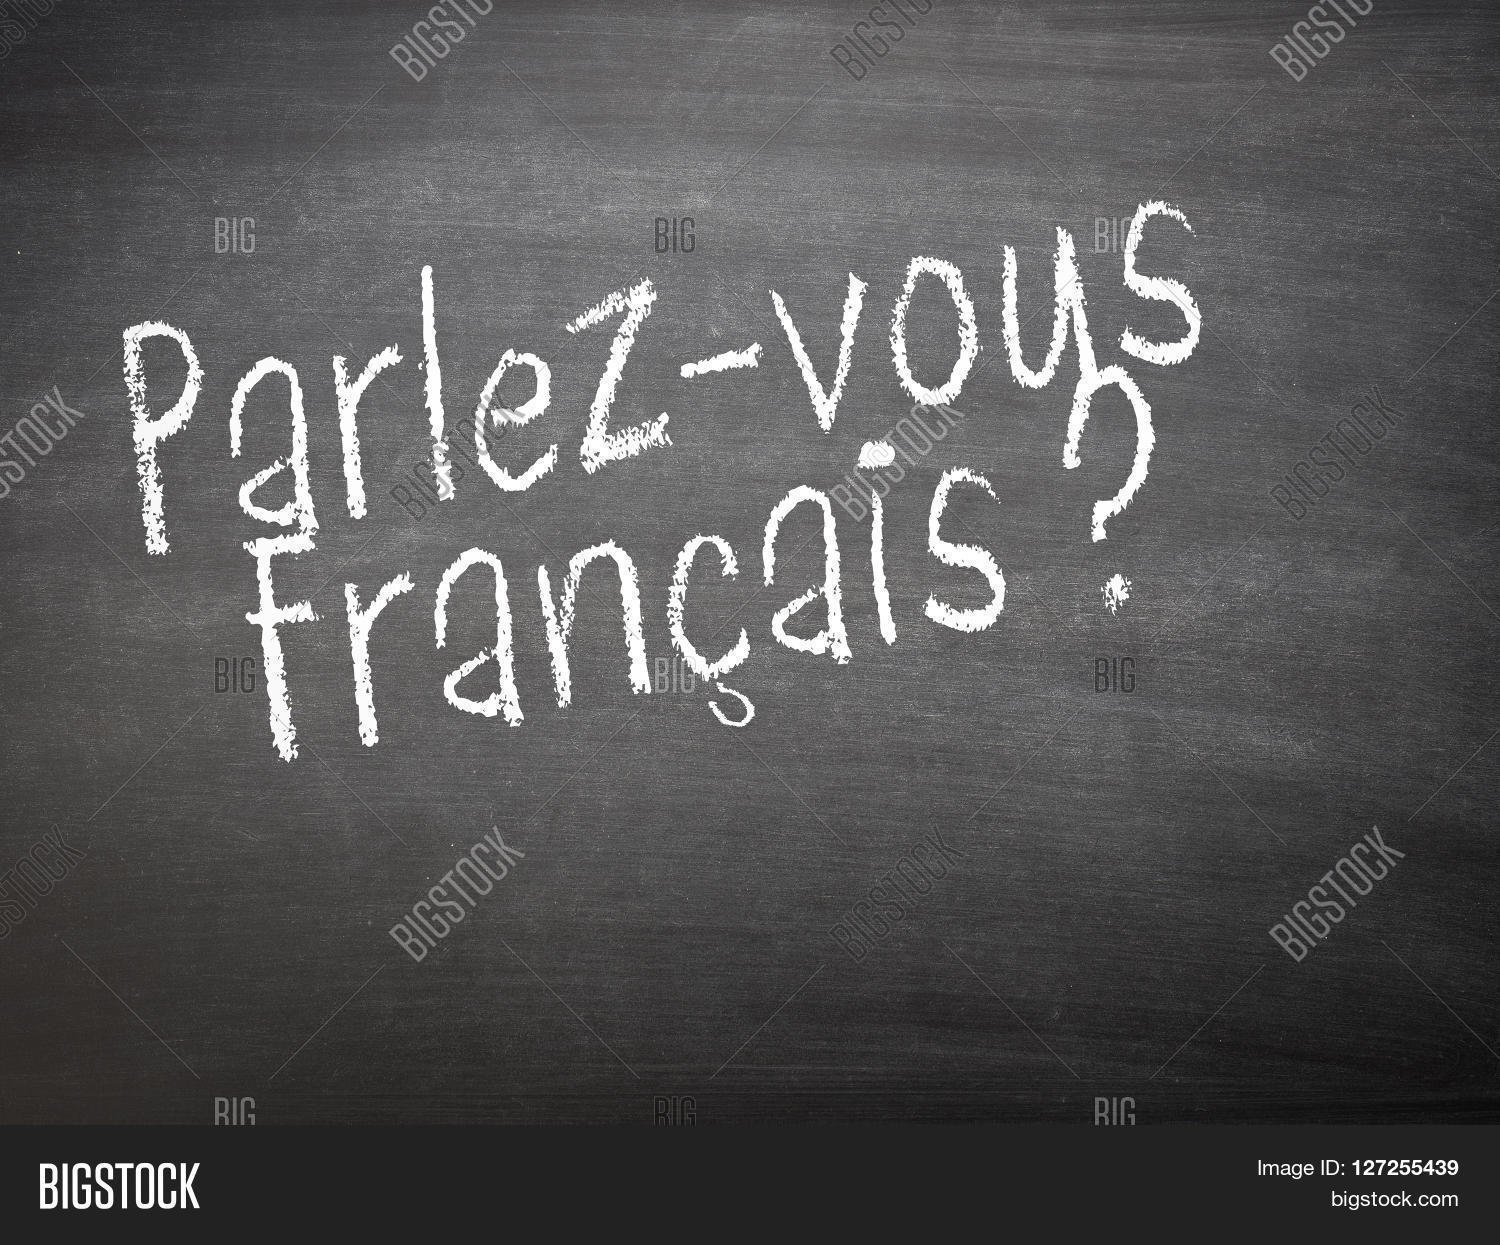 Learning language - French. Learning French language concept of ...